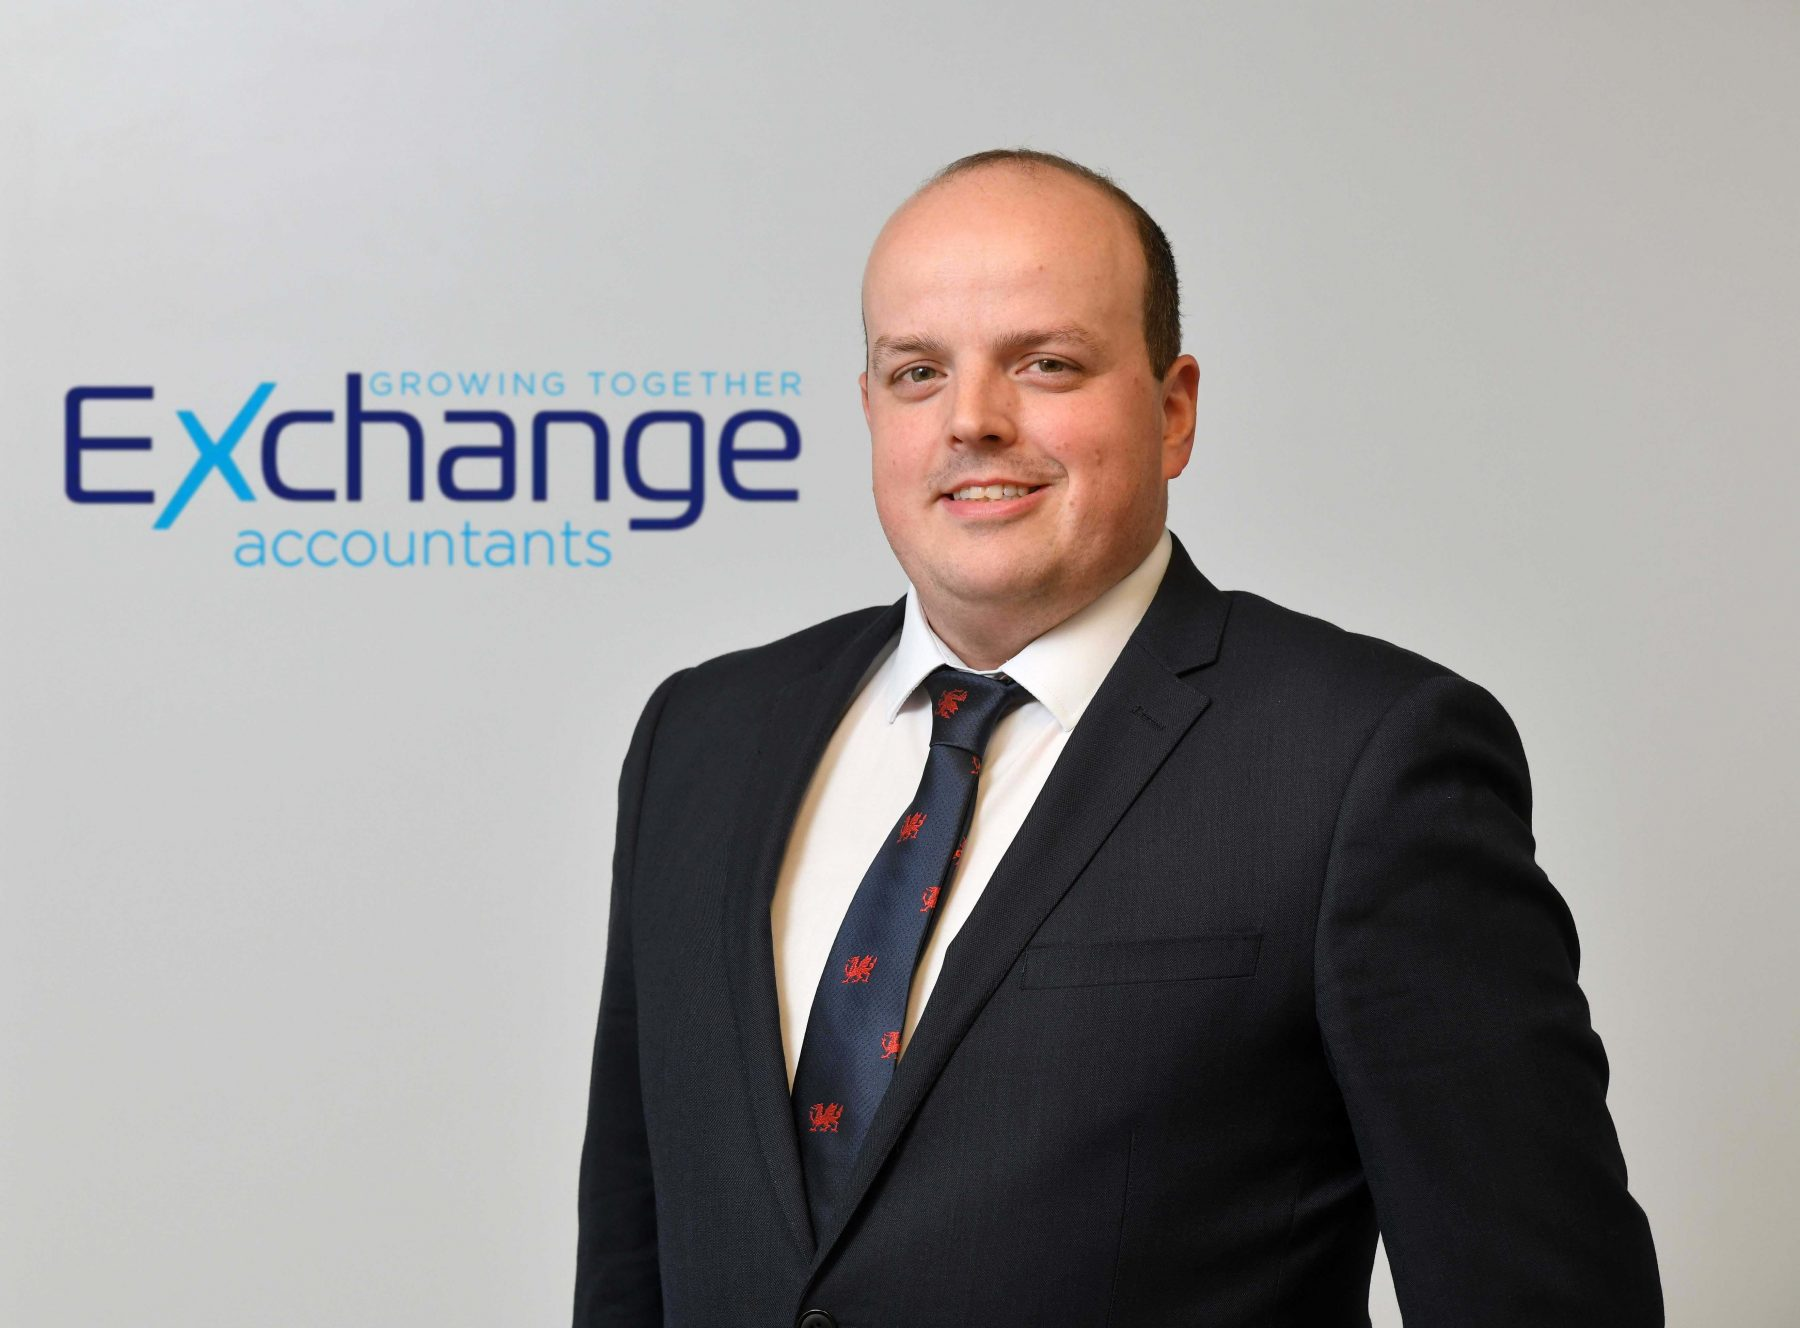 Jamie Morris, Payroll Manager at Exchange Accountants